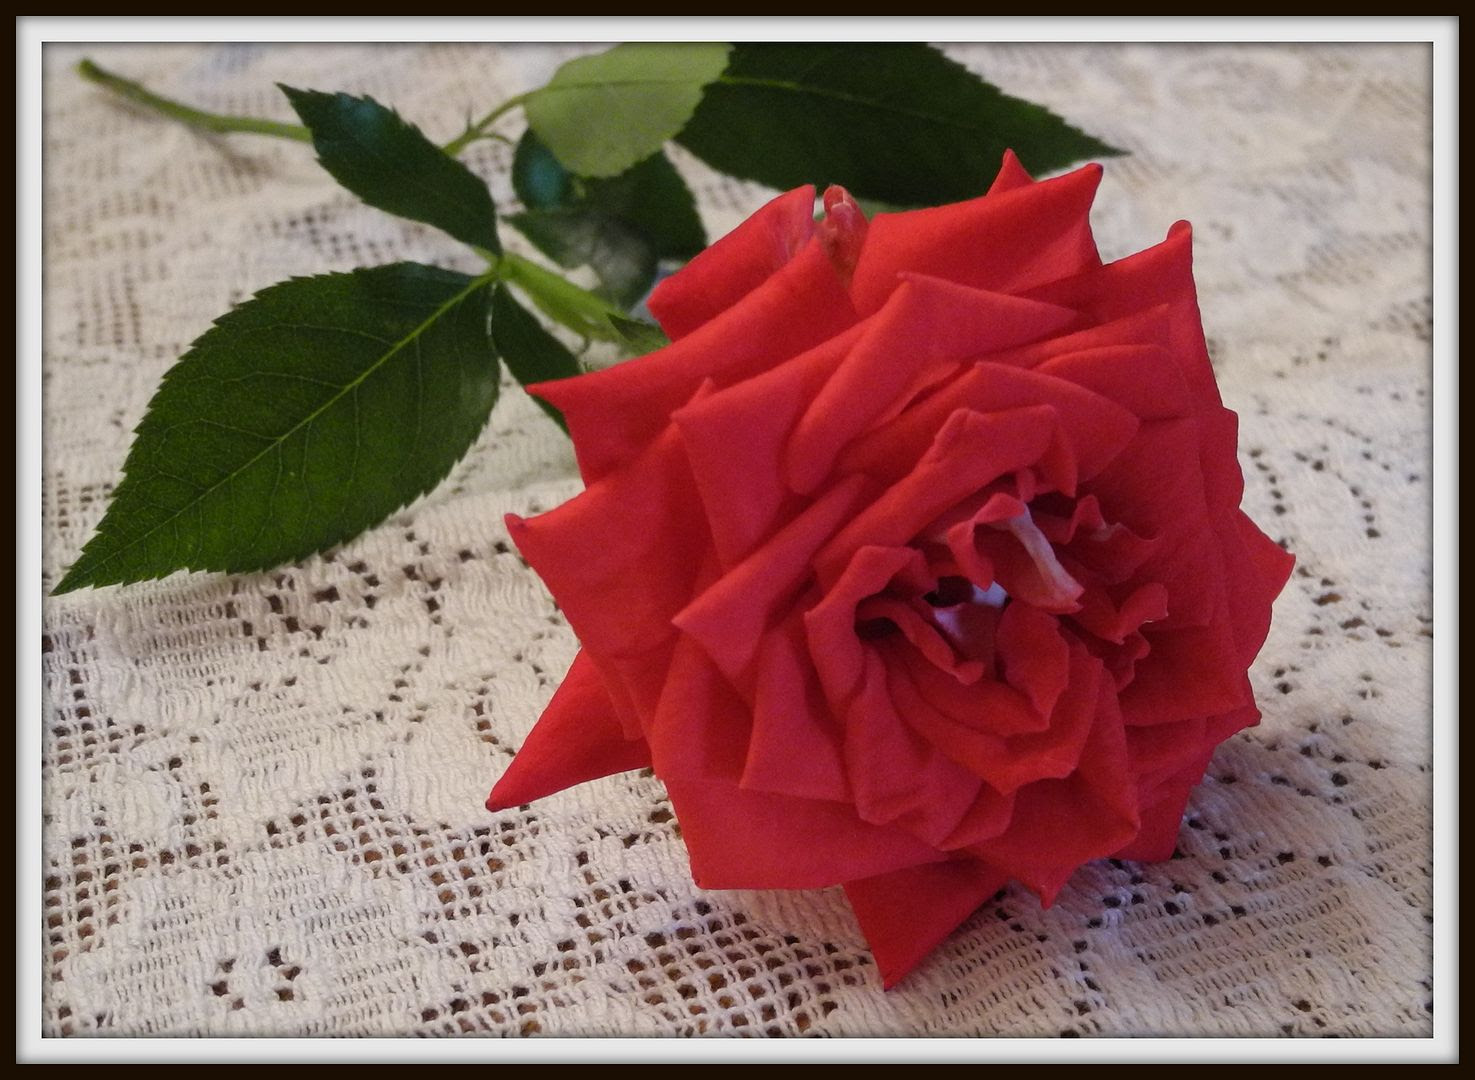 Monique The Rose, by Angie Ouellette-Tower for godsgrowinggarden.com